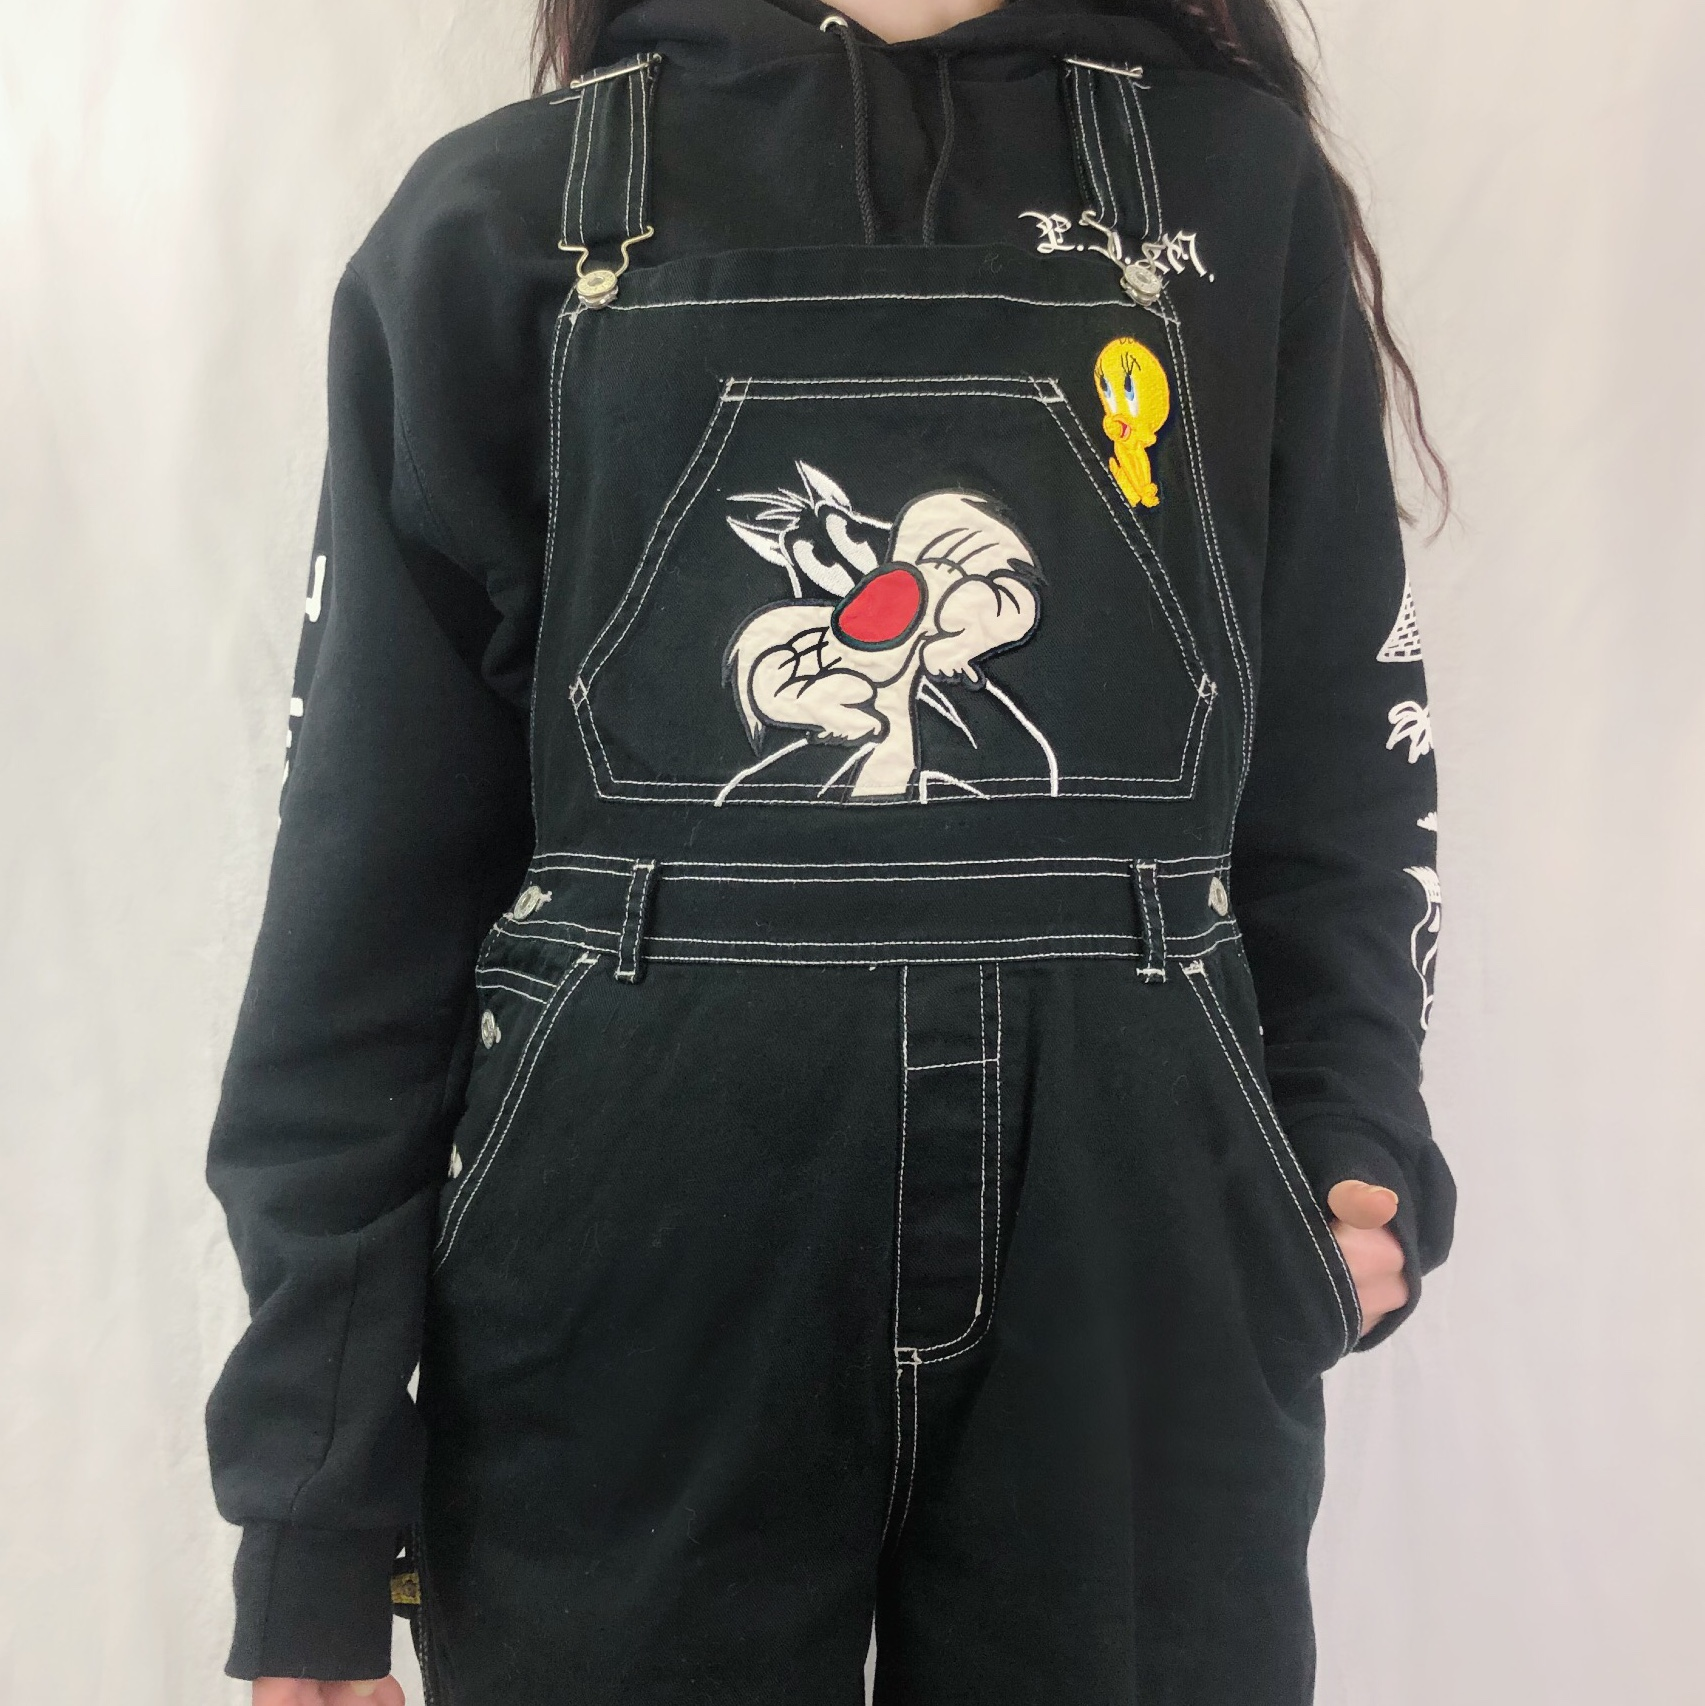 Very Cool Vintage Looney Tune Overalls! They're by Depop